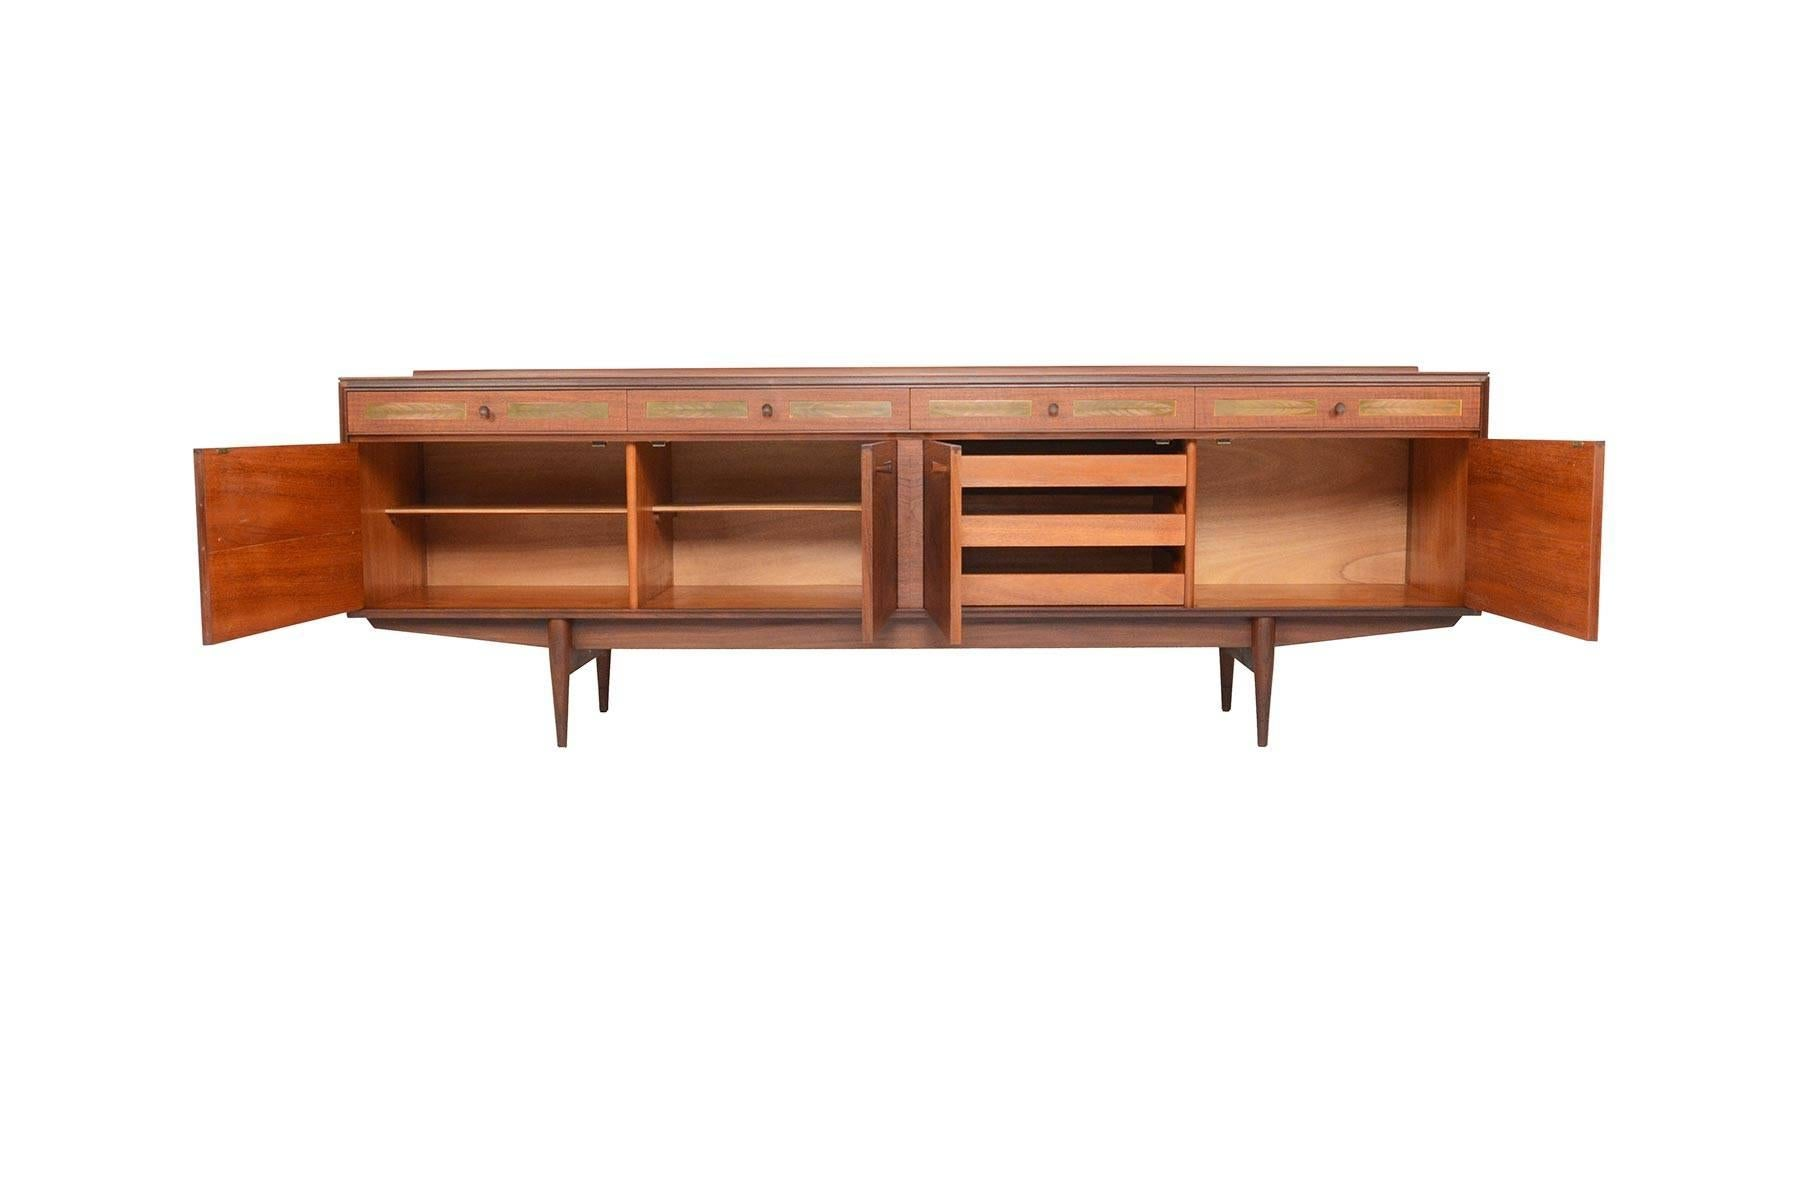 This English Modern Midcentury Large Teak Credenza Was Designed By Robert  Heritage For Archie Shine Furniture